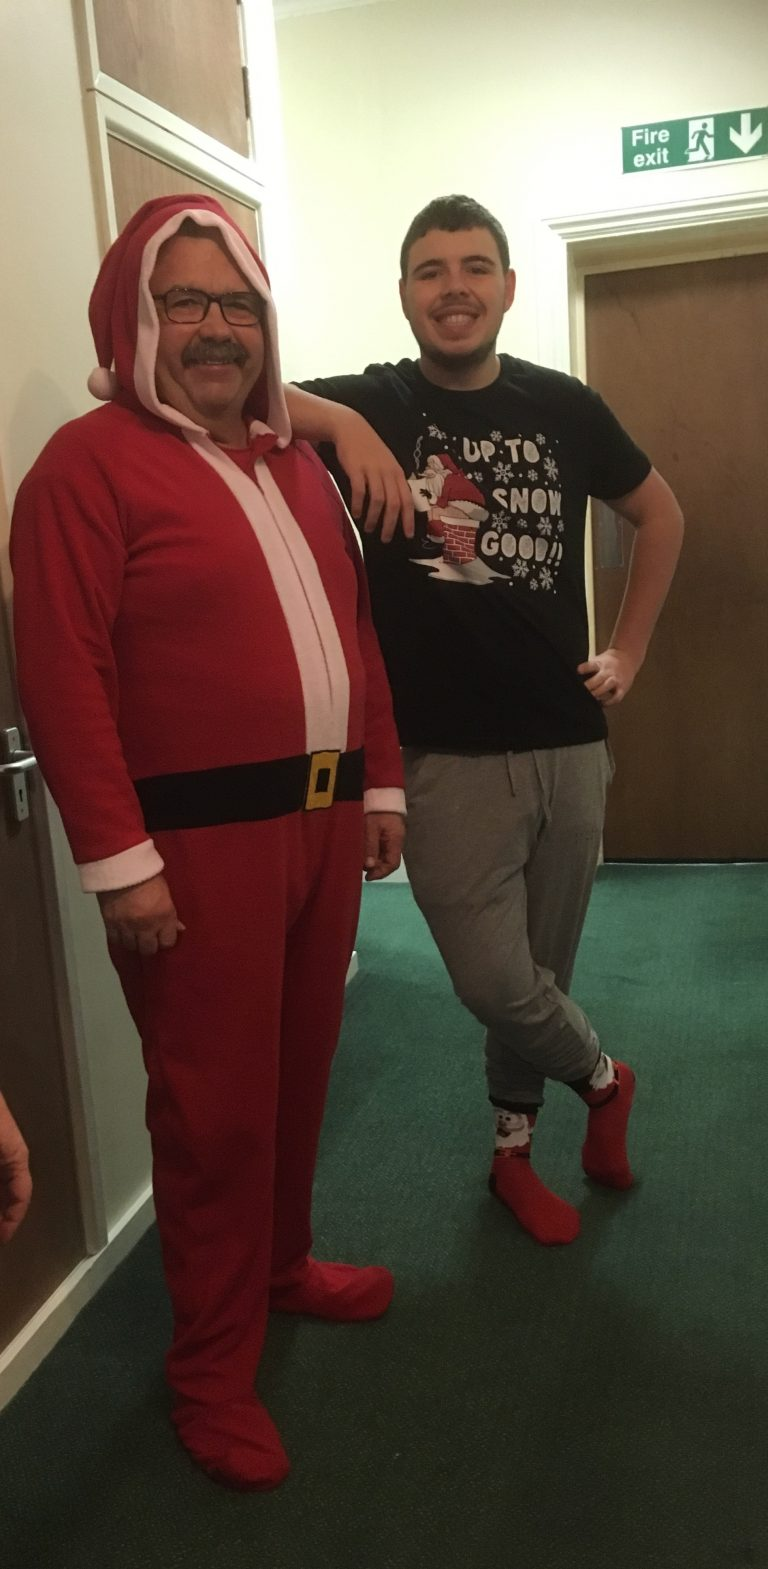 Cardfields staff dressed as Father Christmas